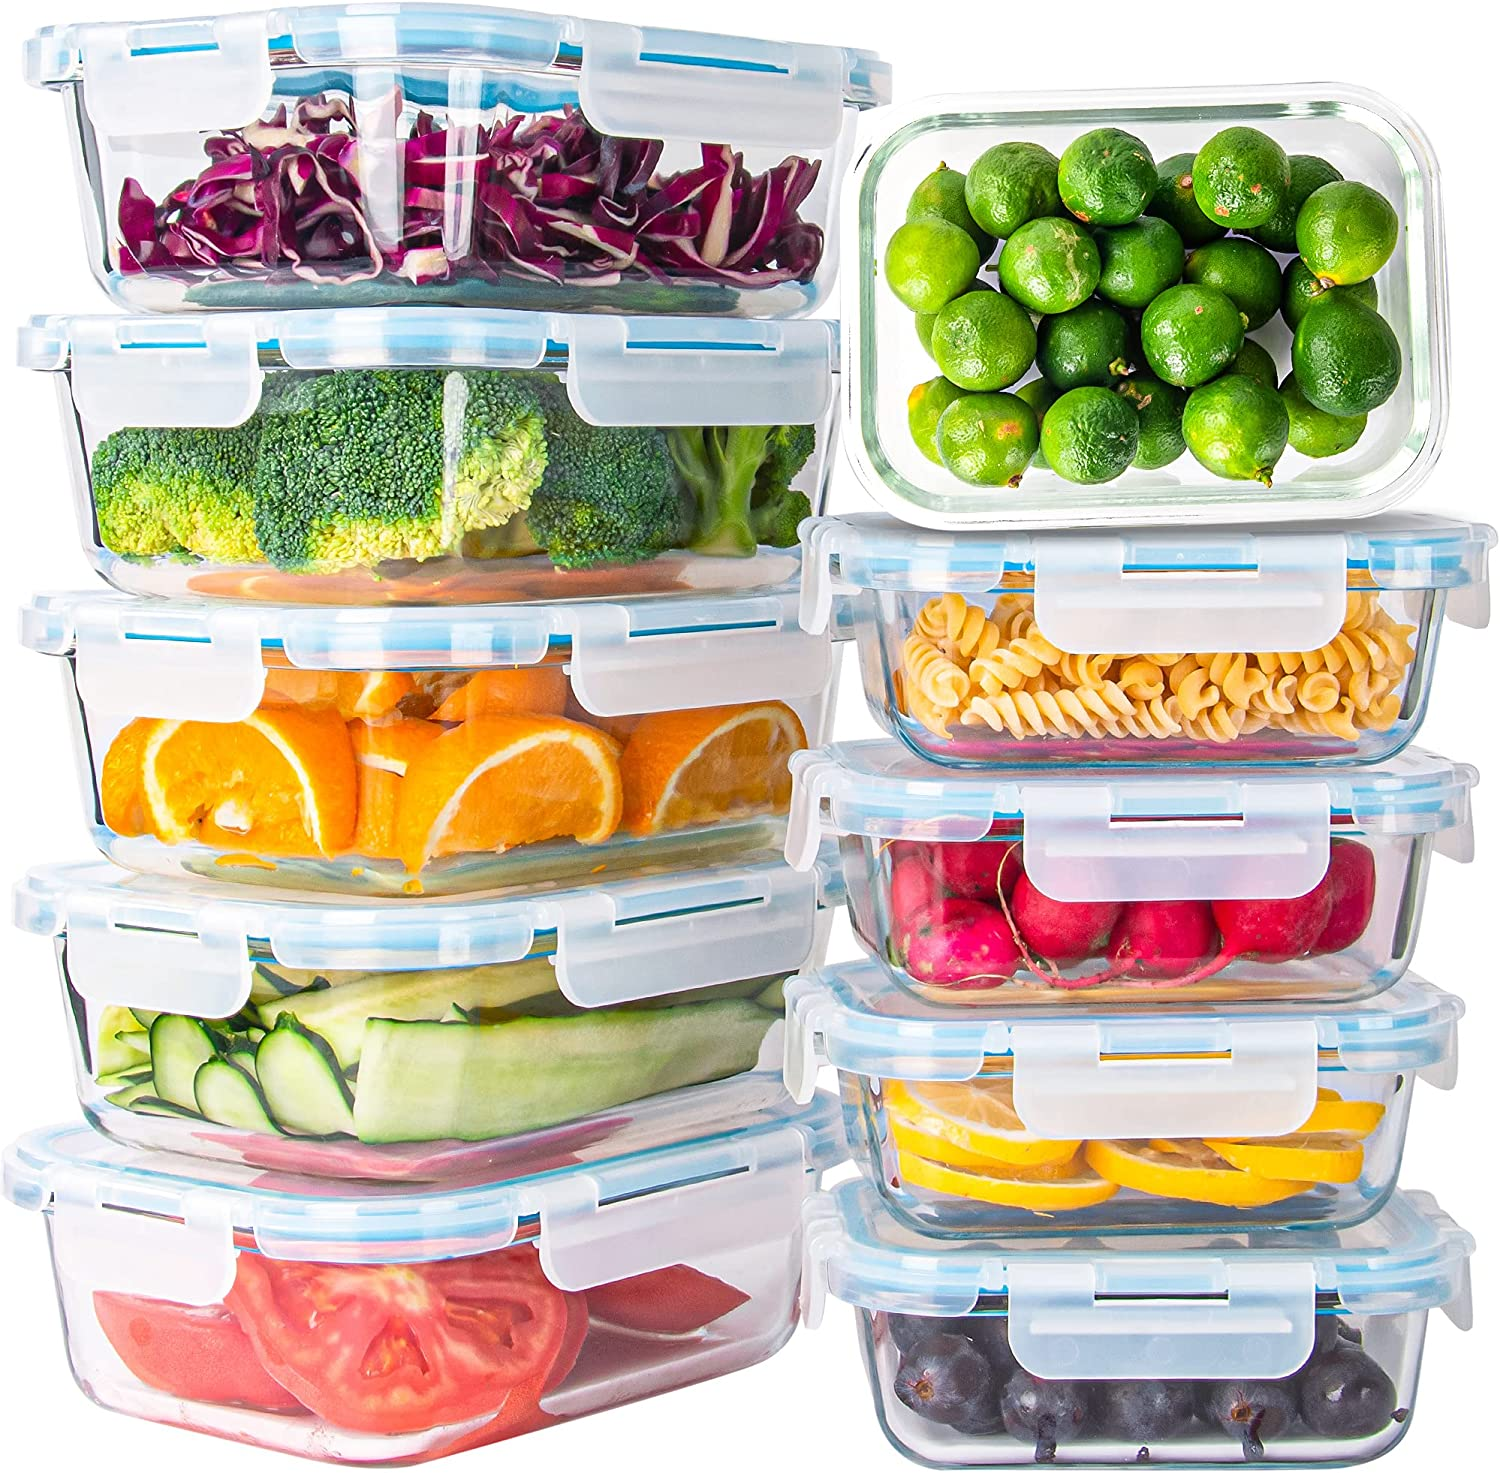 10 Pack Glass Food Storage Airti Omaha Mall Max 87% OFF Containers with Lids Leakproof